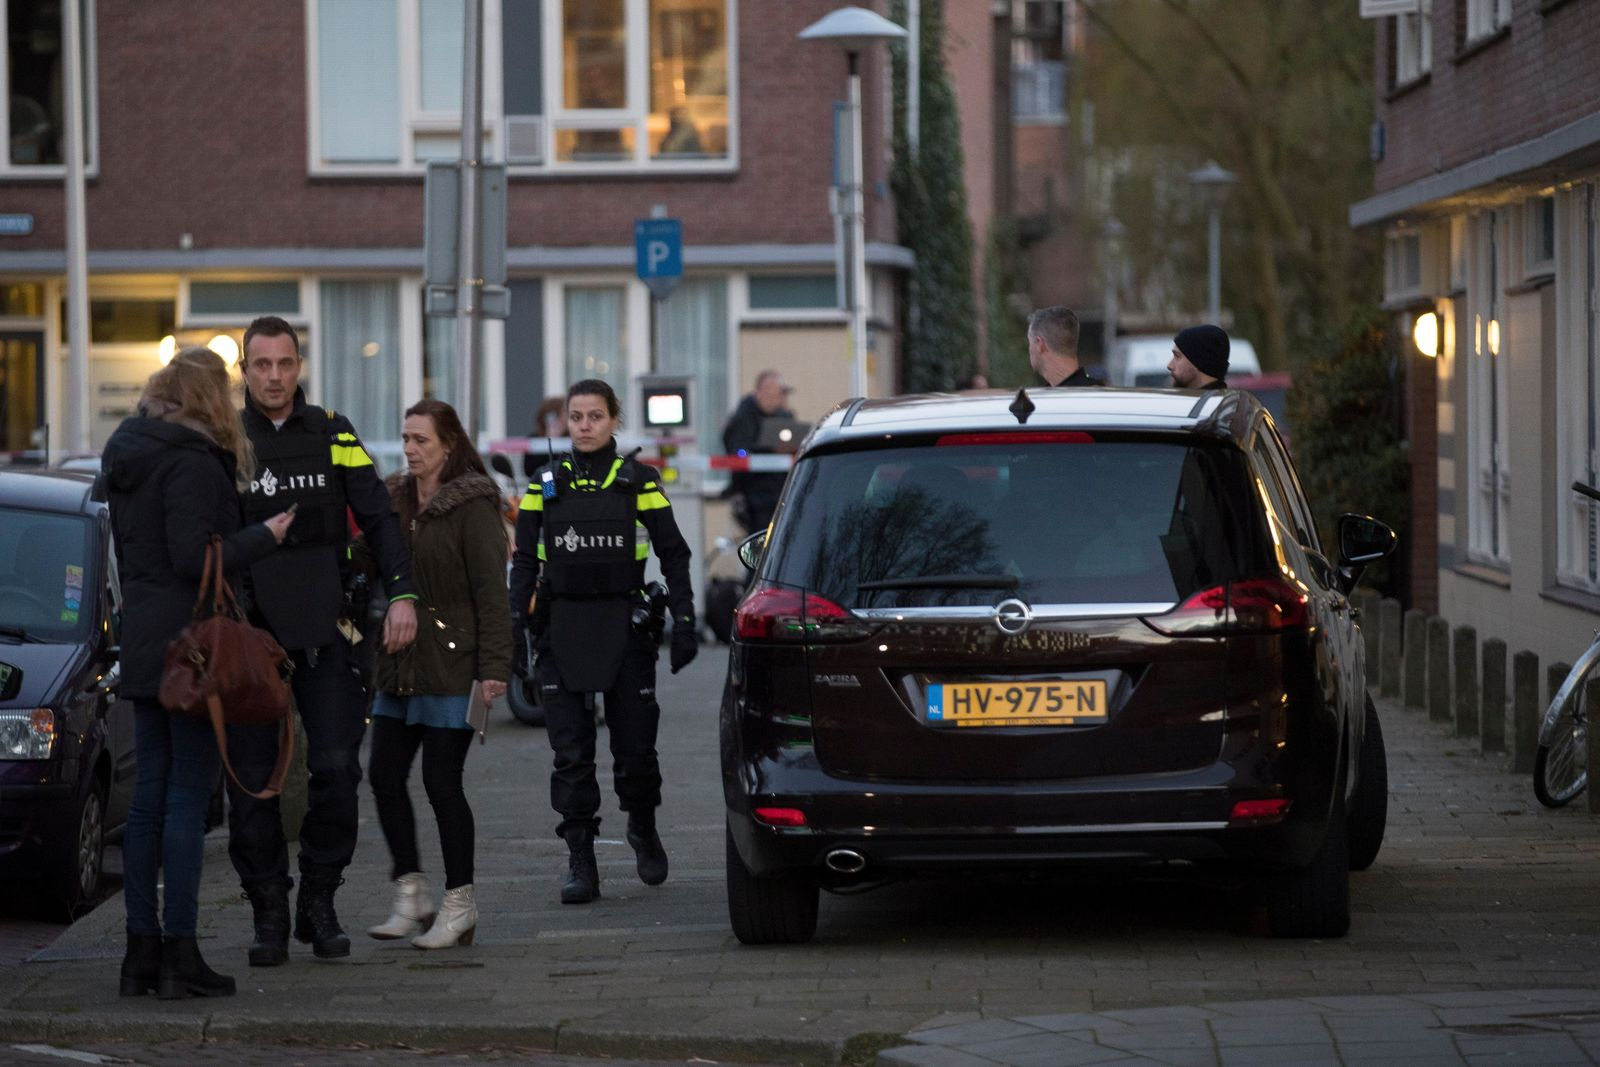 Dutch police stand guard outside a house where the suspect of a shooting incident in a tram was arrested in Utrecht, Netherlands, Monday, March 18, 2019.(AP Photo/Peter Dejong)